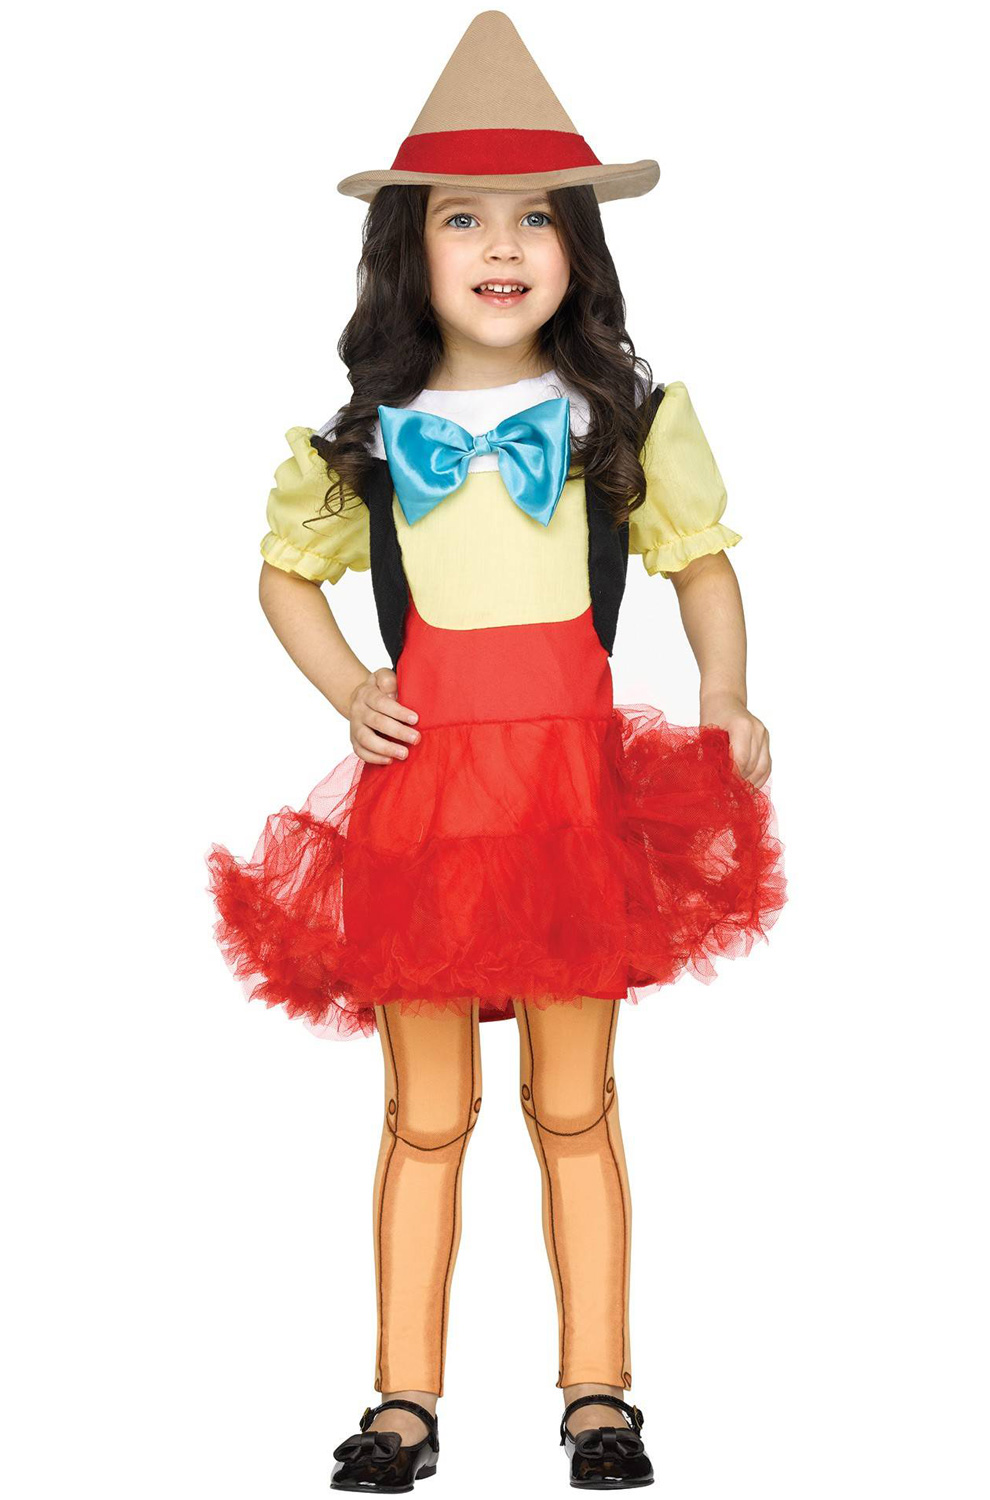 Wooden Girl Pinocchio Puppets Toddler Costume | eBay